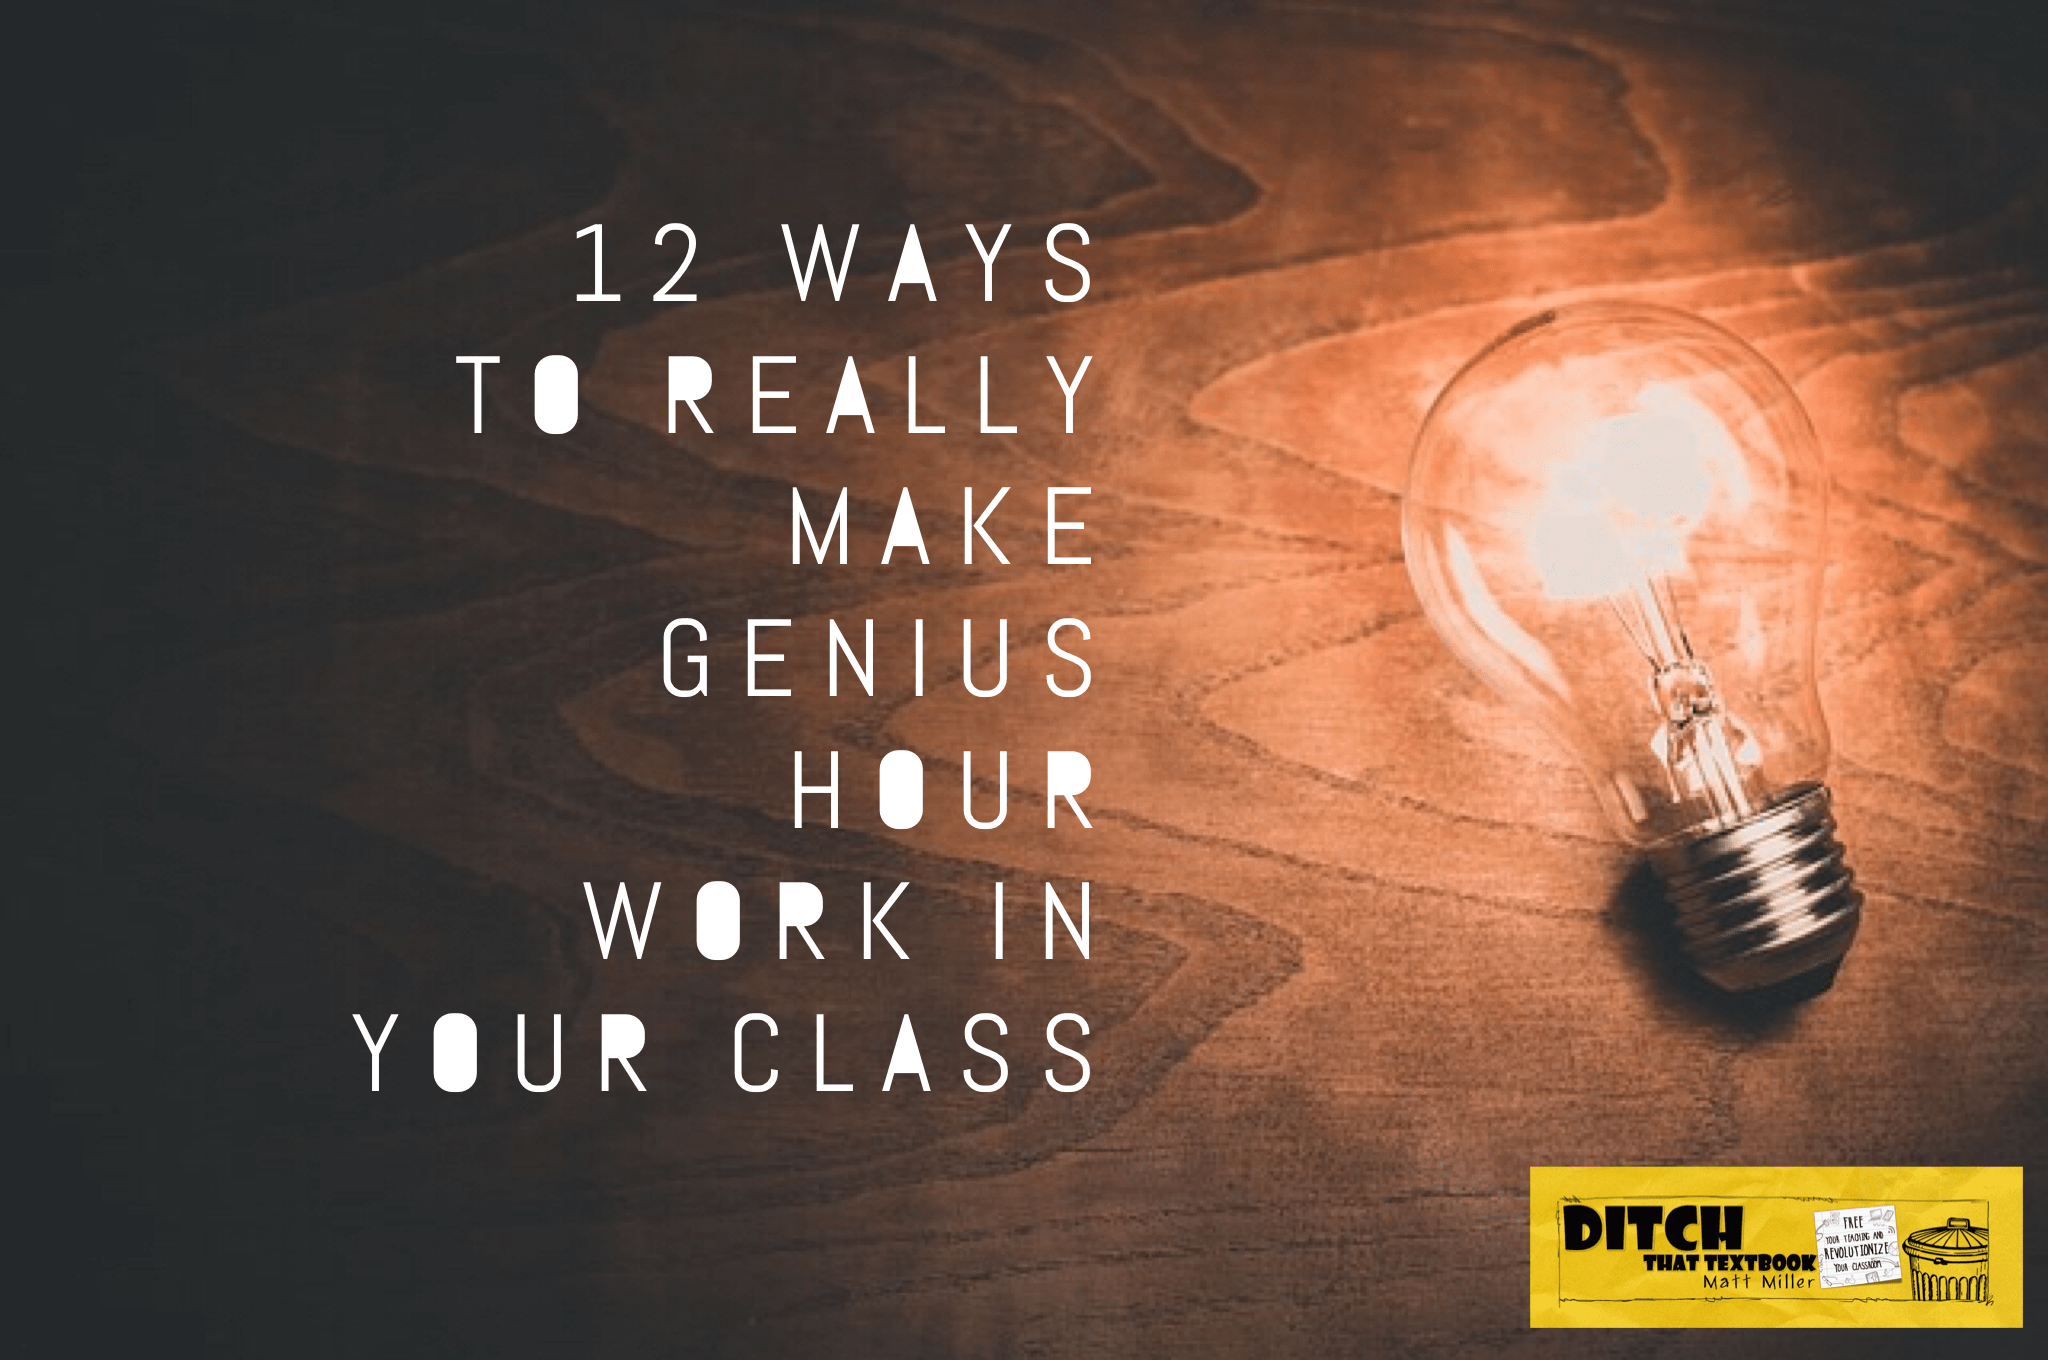 12 Ways To Really Make Genius Hour Work In Your Class